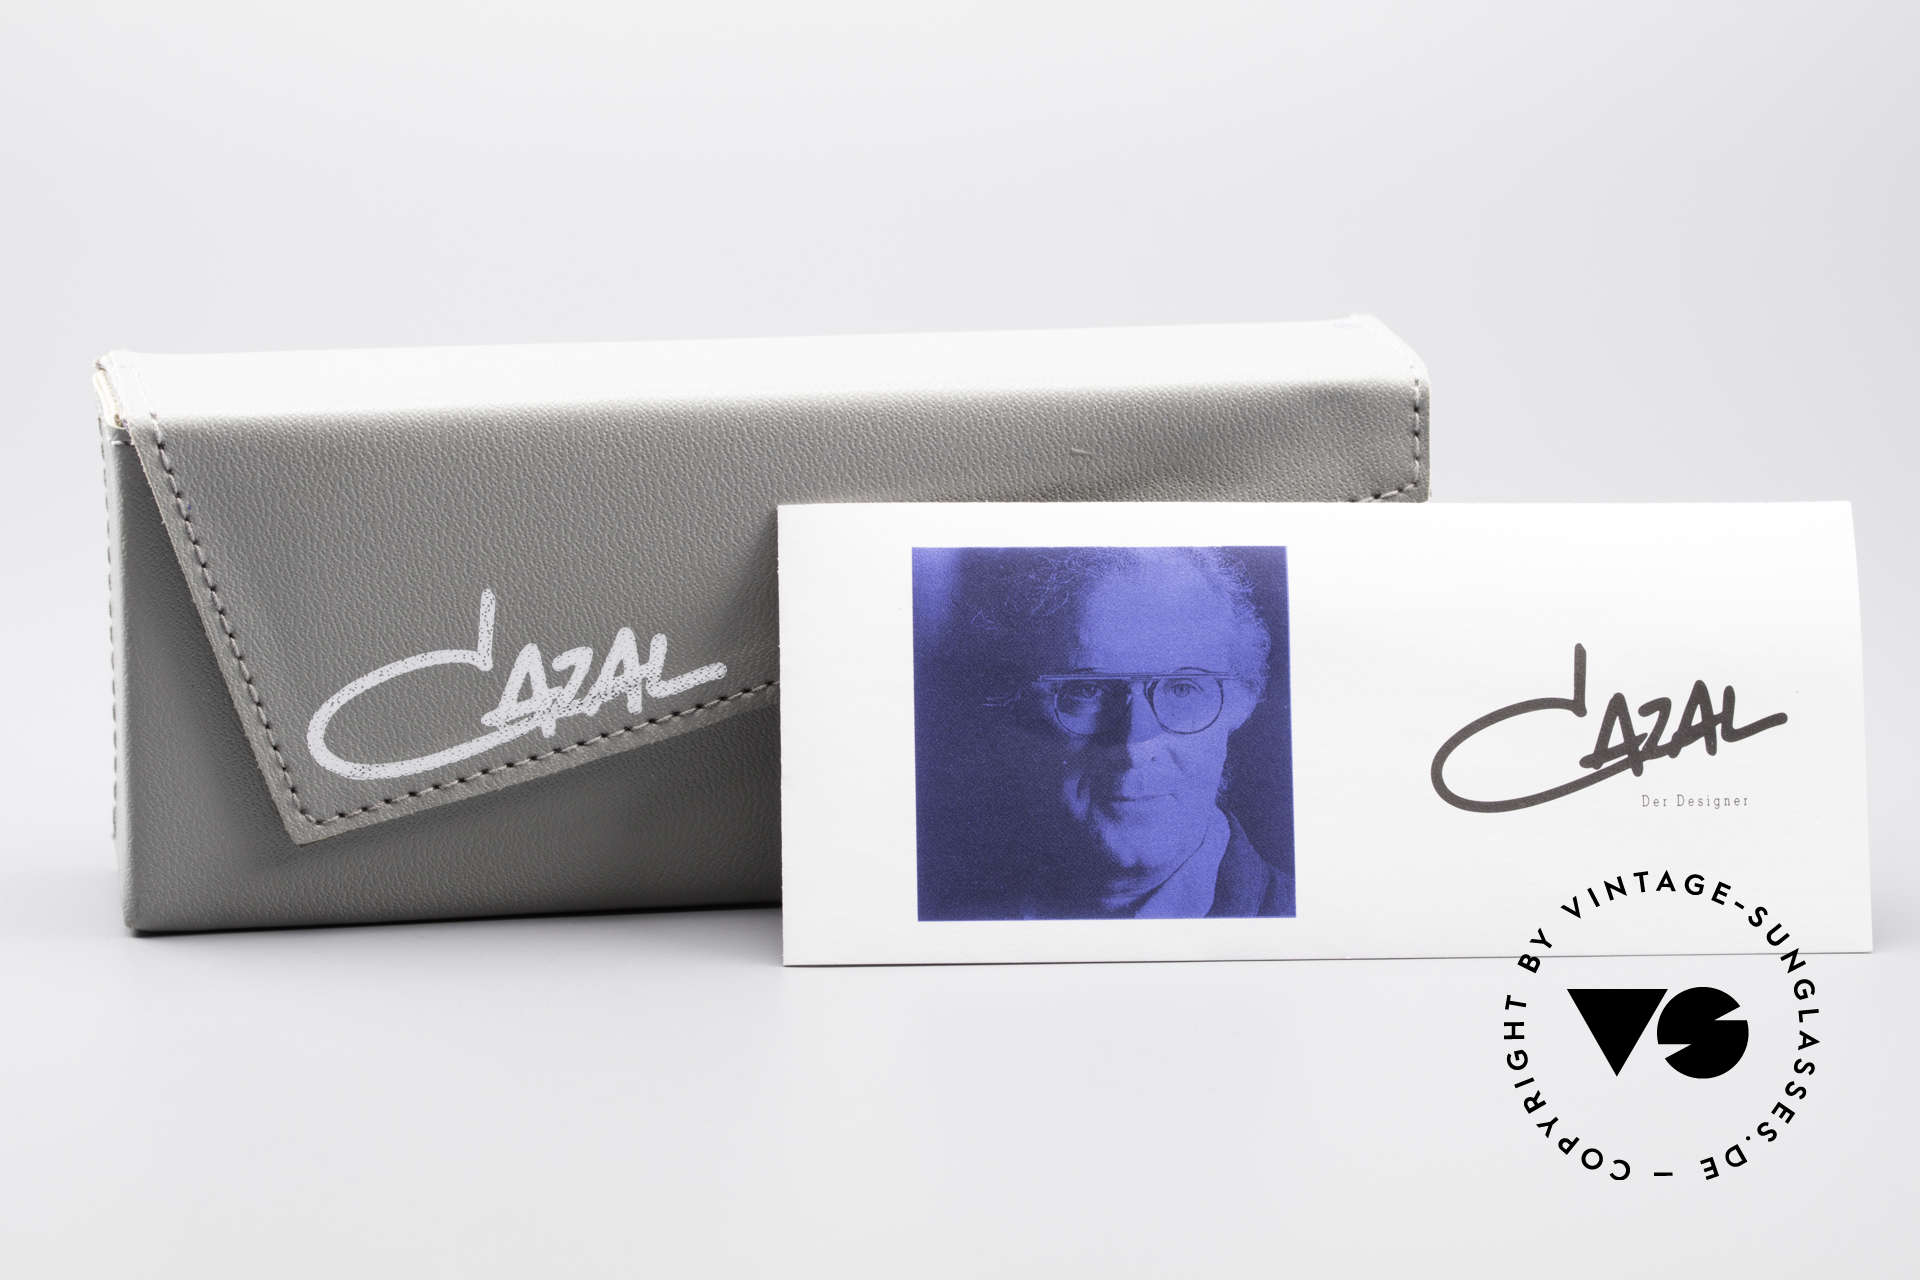 Cazal 648 Old Cari Zalloni Sunglasses, M size 48-19 with blue sun lenses; 100% UV protection, Made for Men and Women